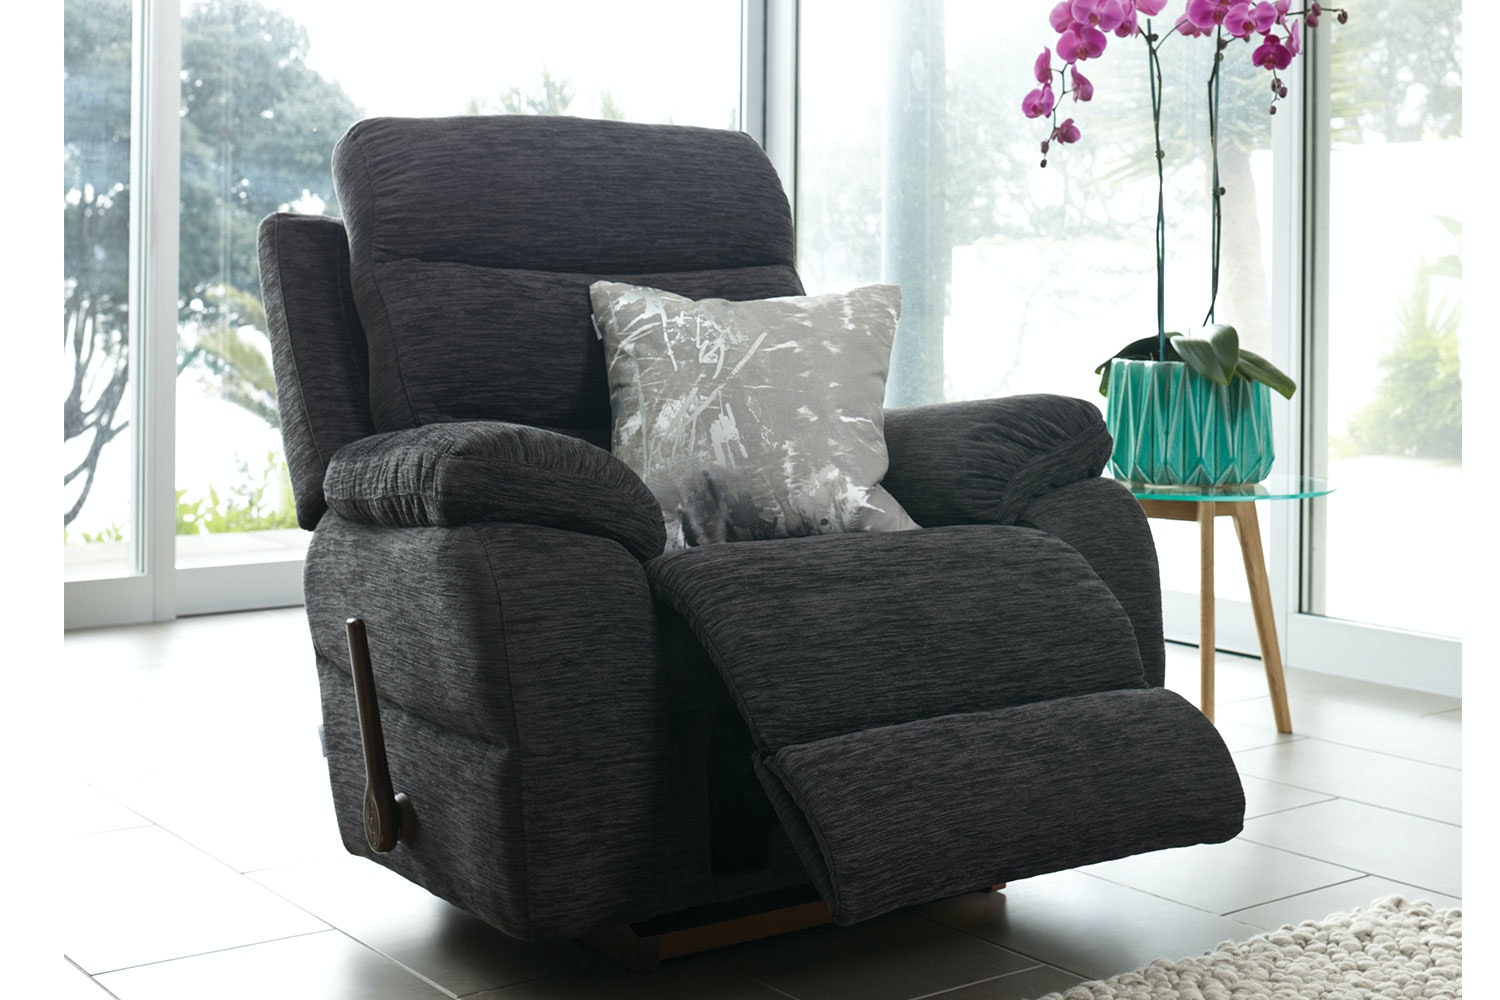 Dallas Fabric Recliner by La-Z-Boy